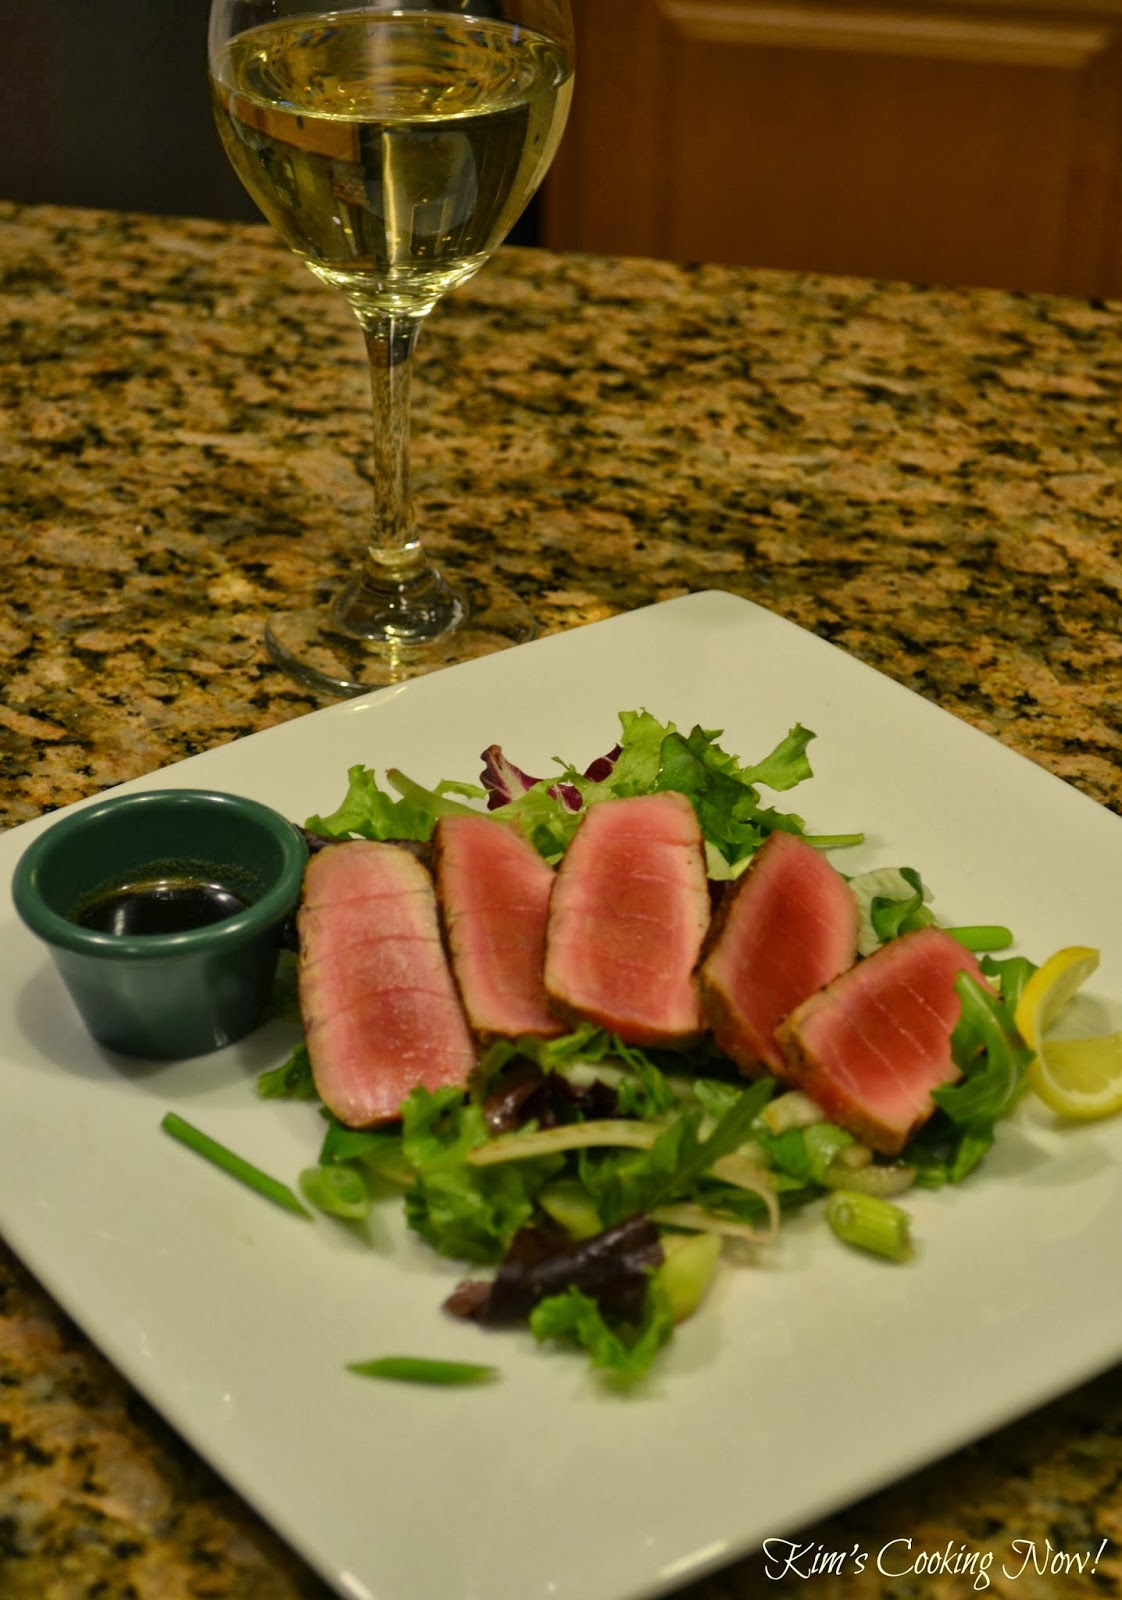 Seared Ahi Tuna with Wasabi Ponzu Dipping Sauce and Fennel Salad with ...